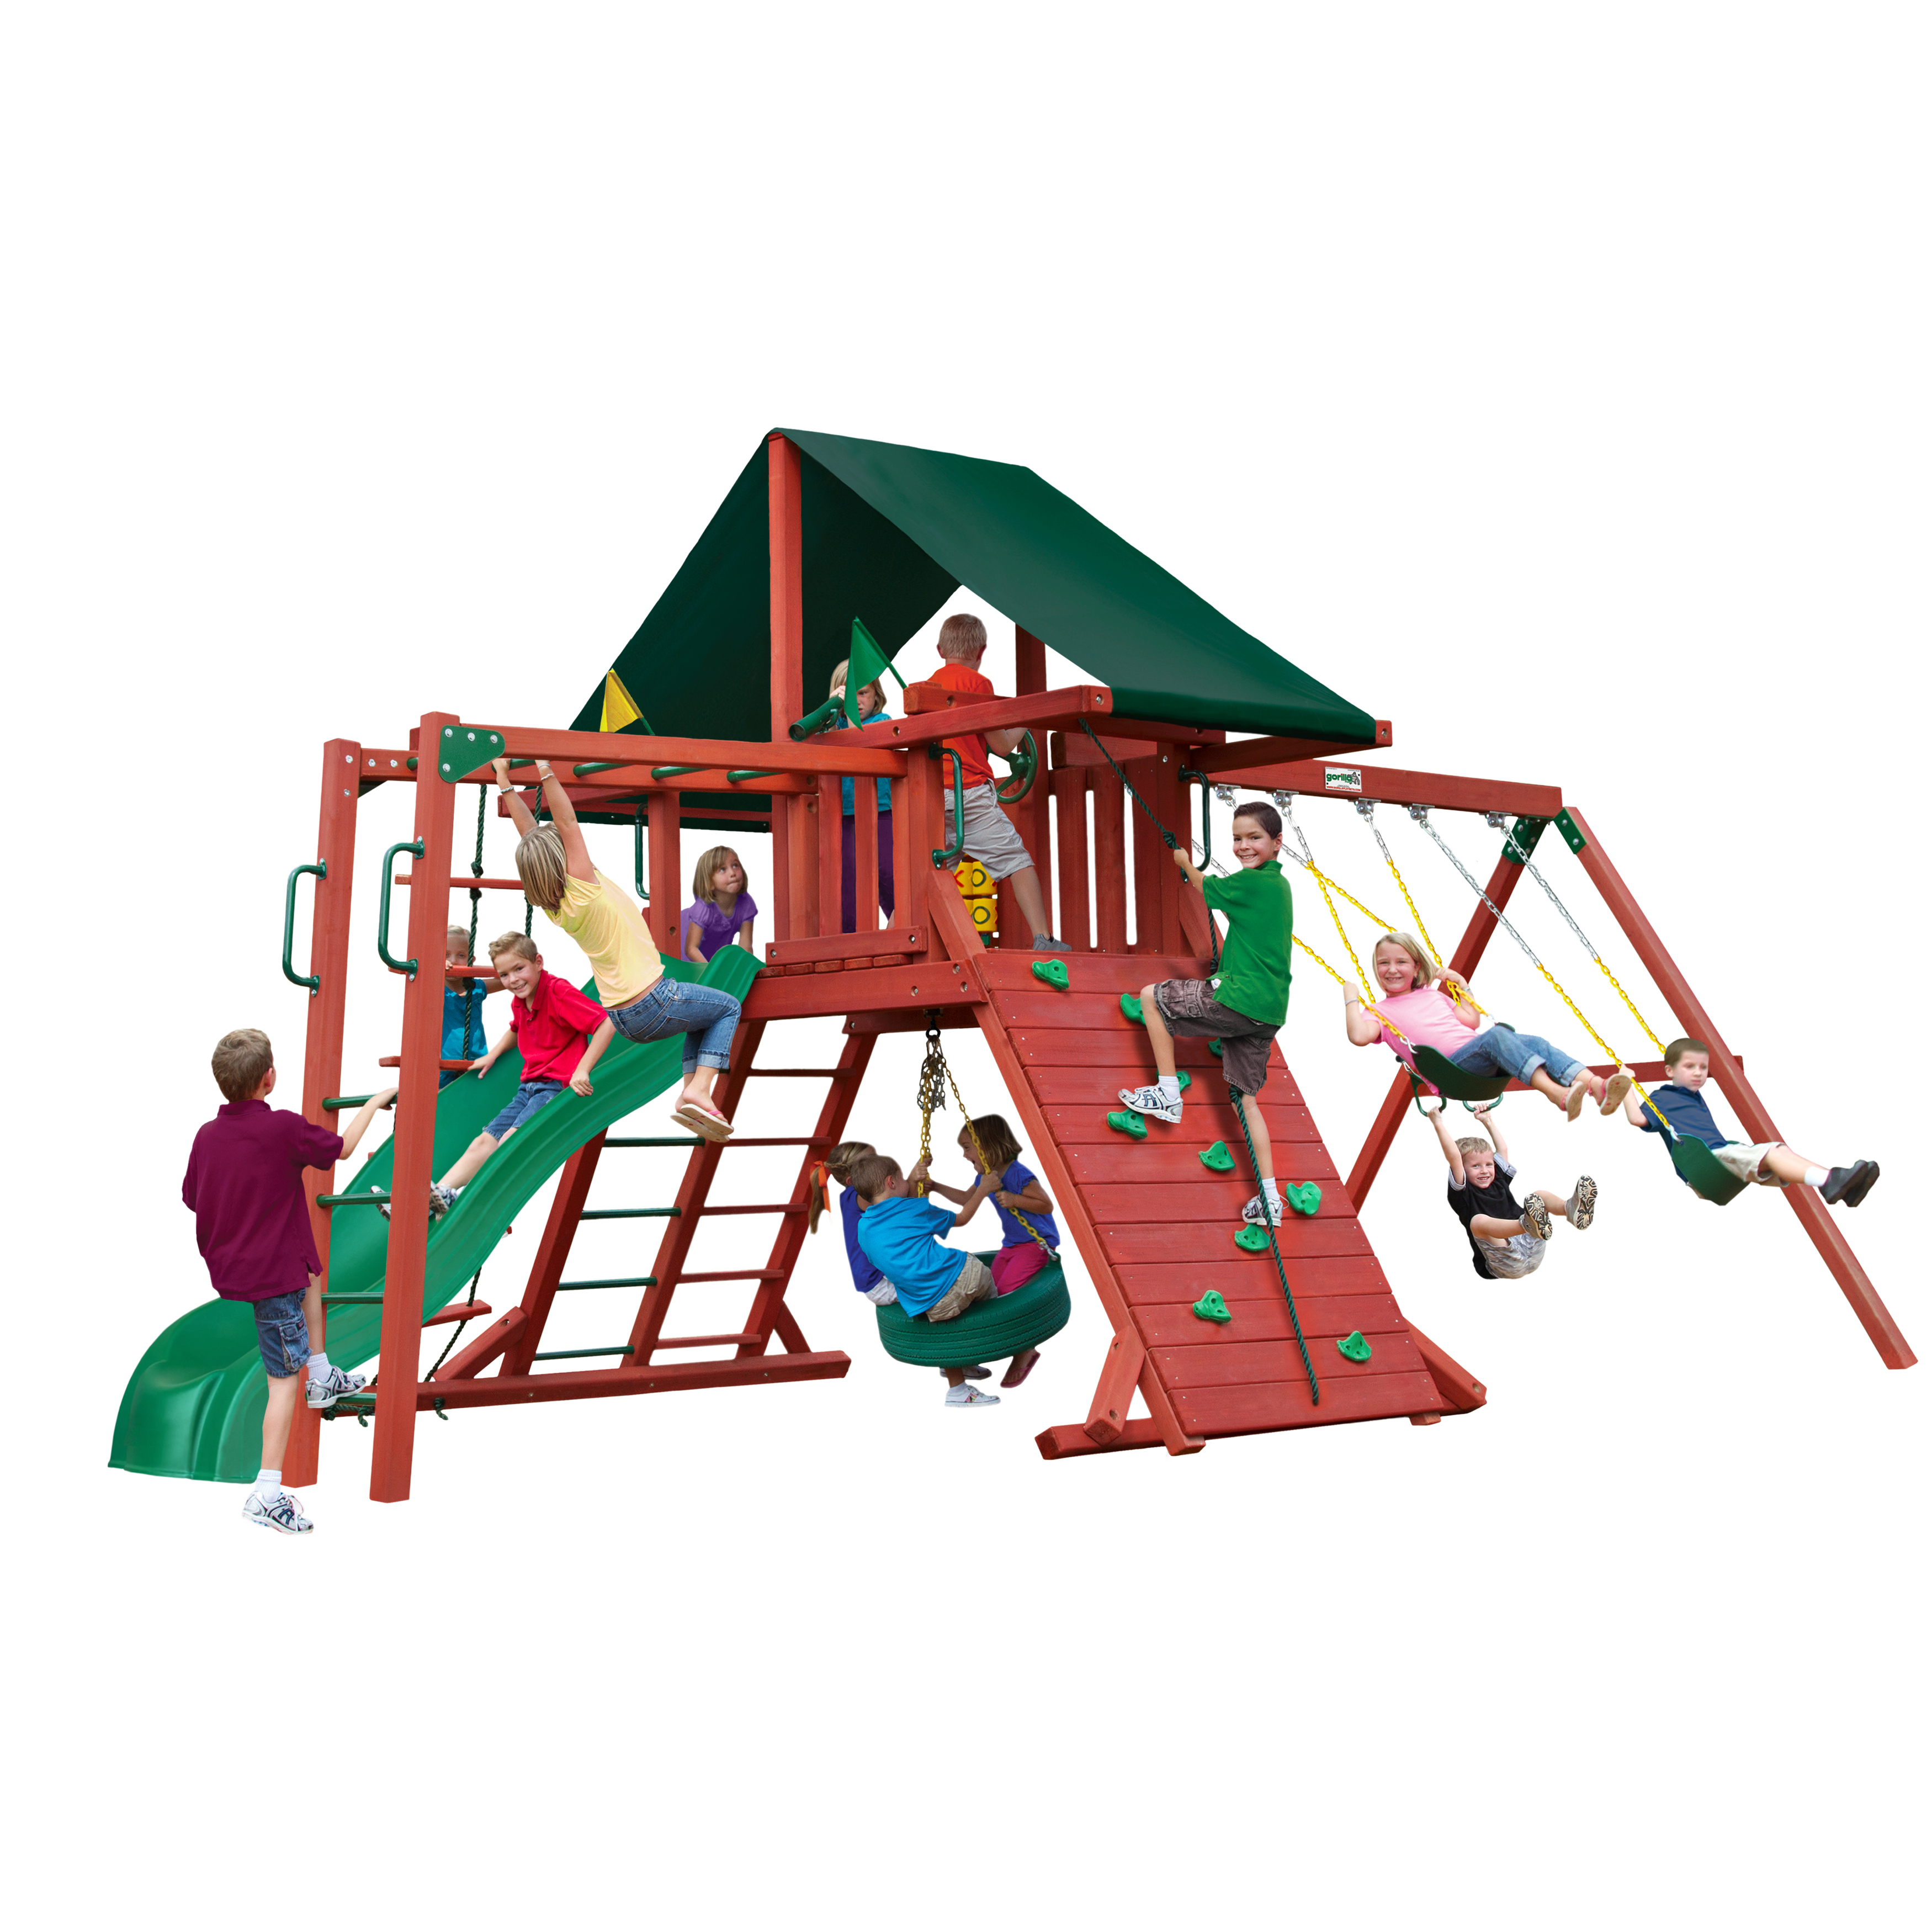 Gorilla Playsets Sun Climber II Wooden Swing Set with Sunbrella® Canvas Canopy, Tire Swing, and Monkey Bars